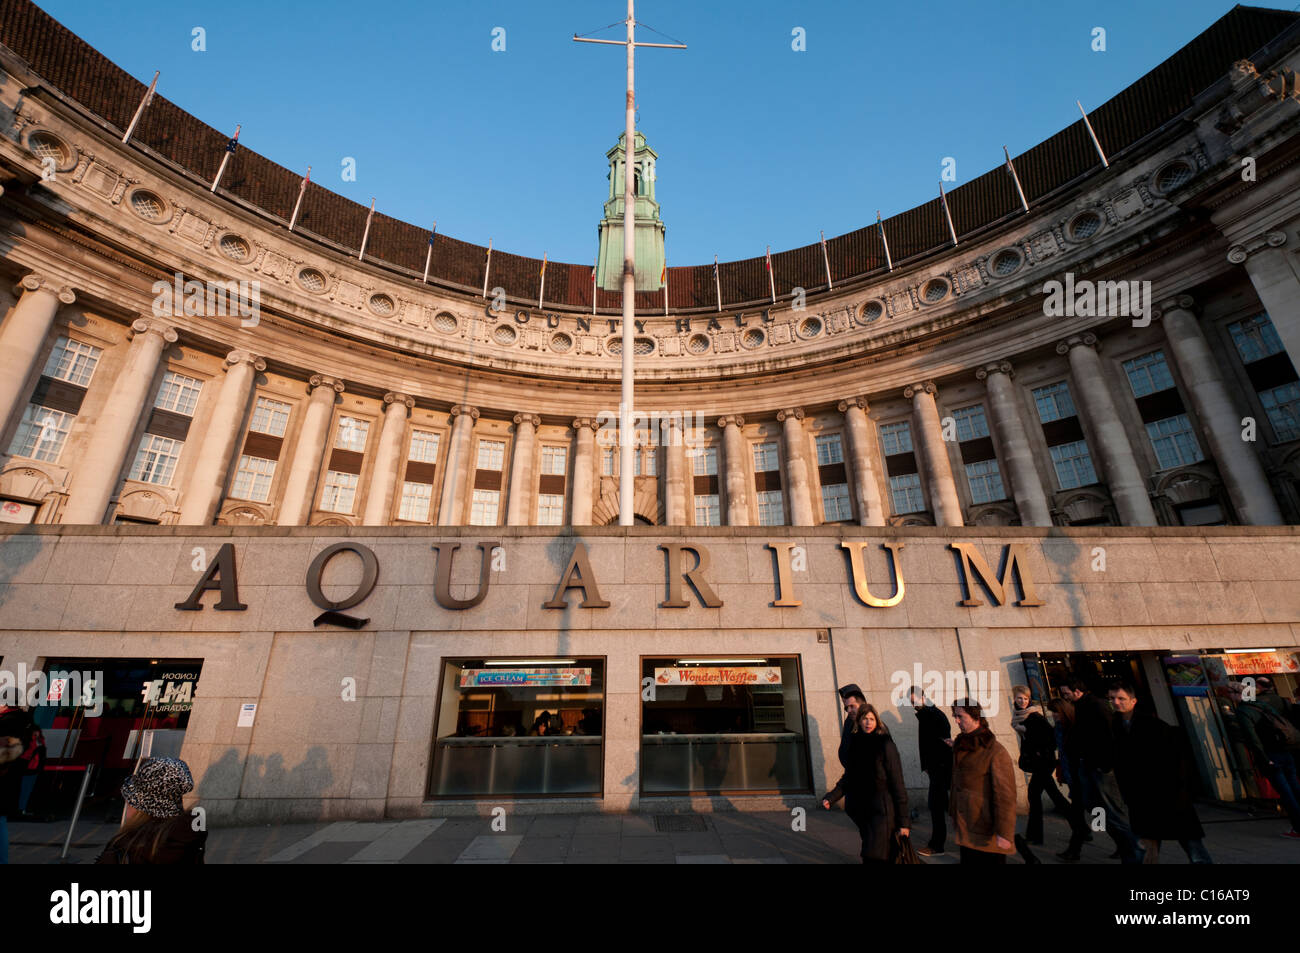 The Aquarium and County Hall at the South Bank in London,England - Stock Image